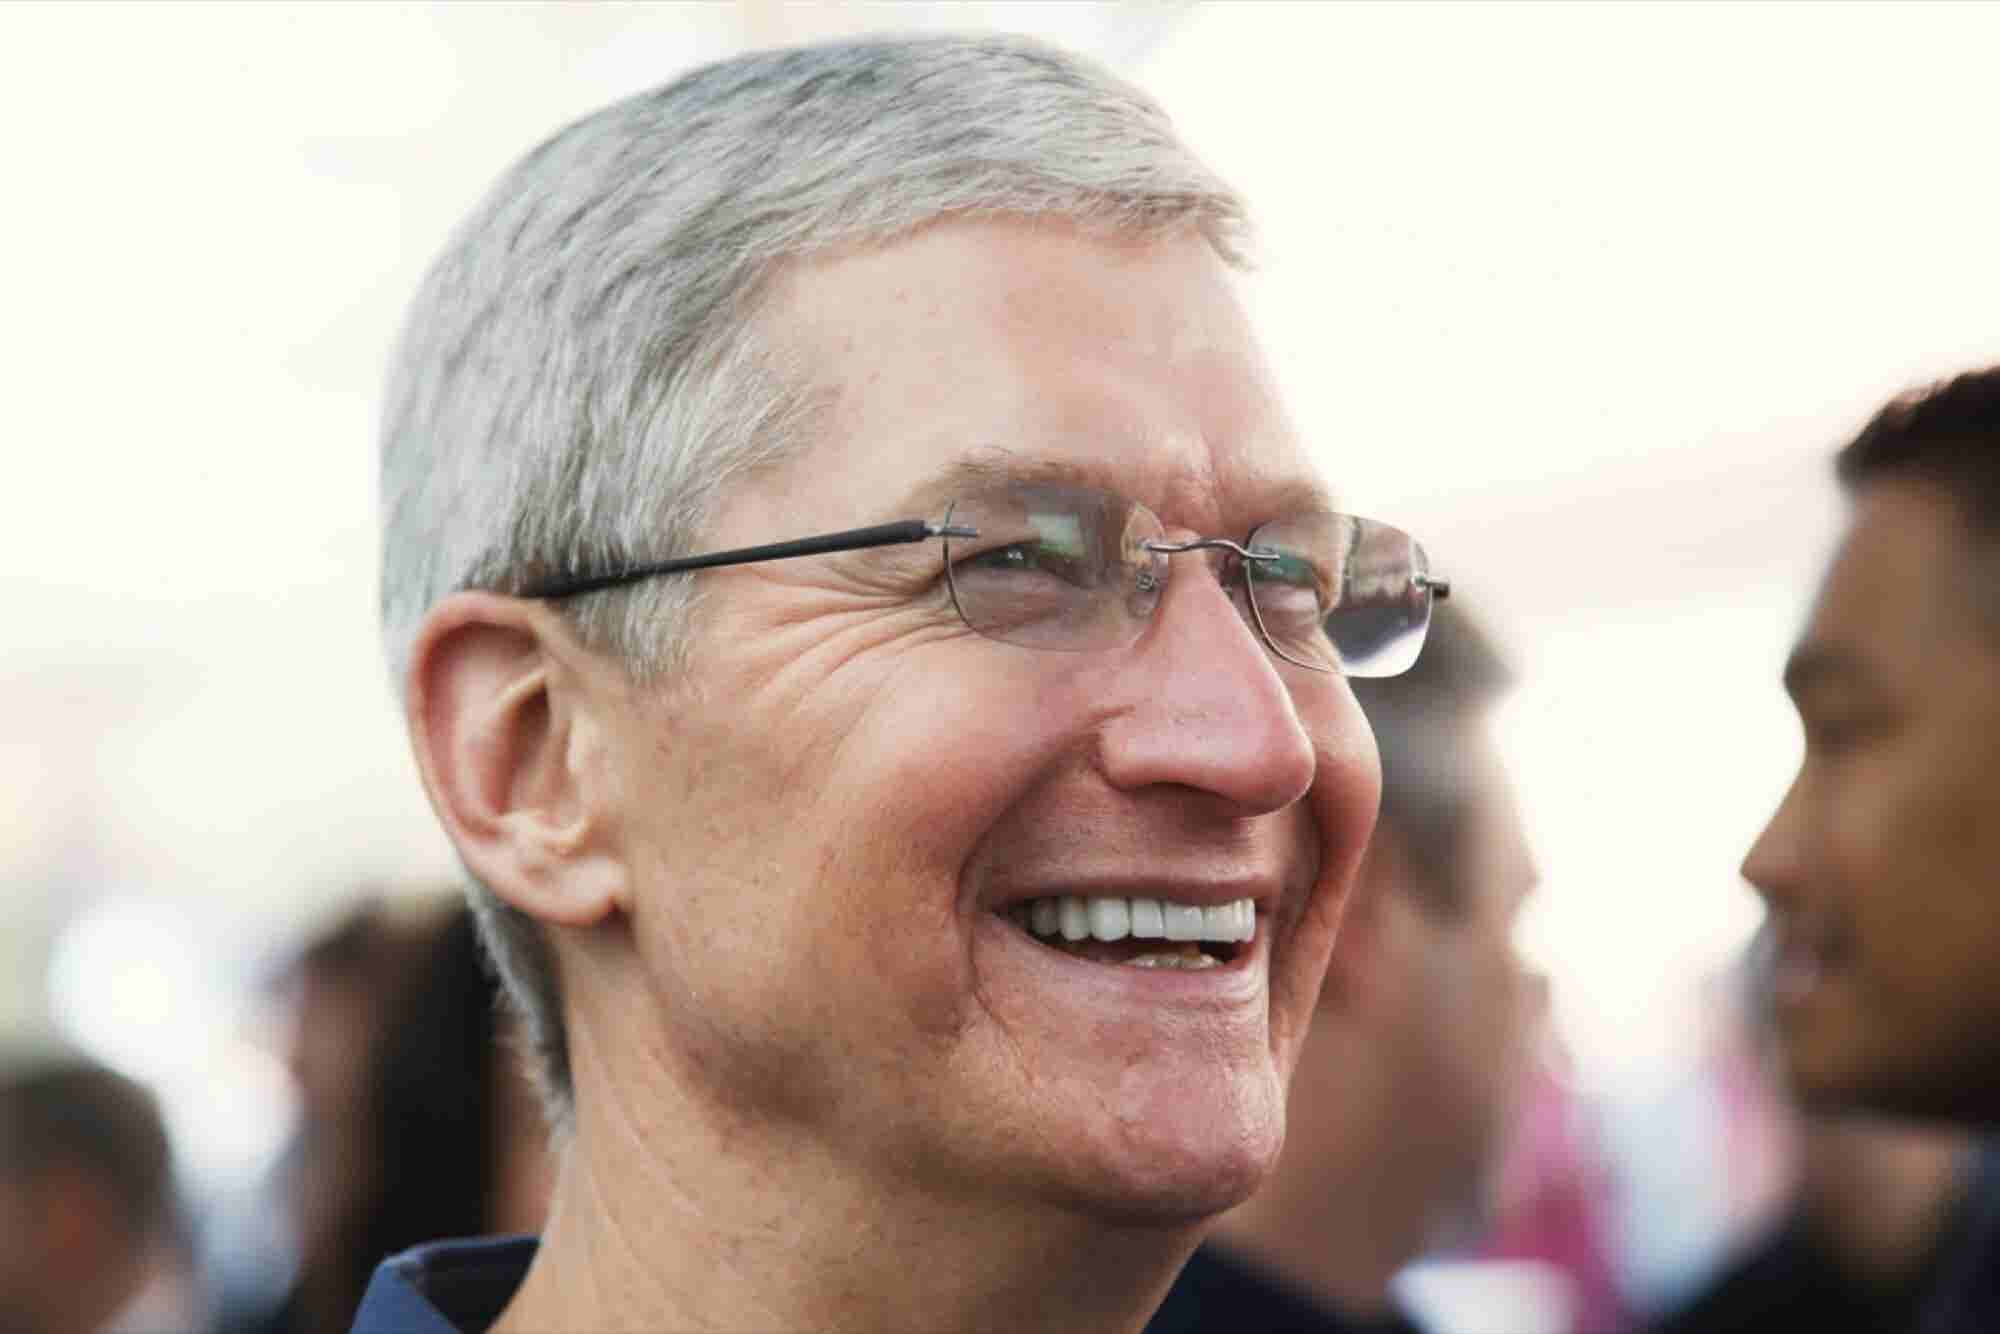 Apple CEO to Grads: Change the World